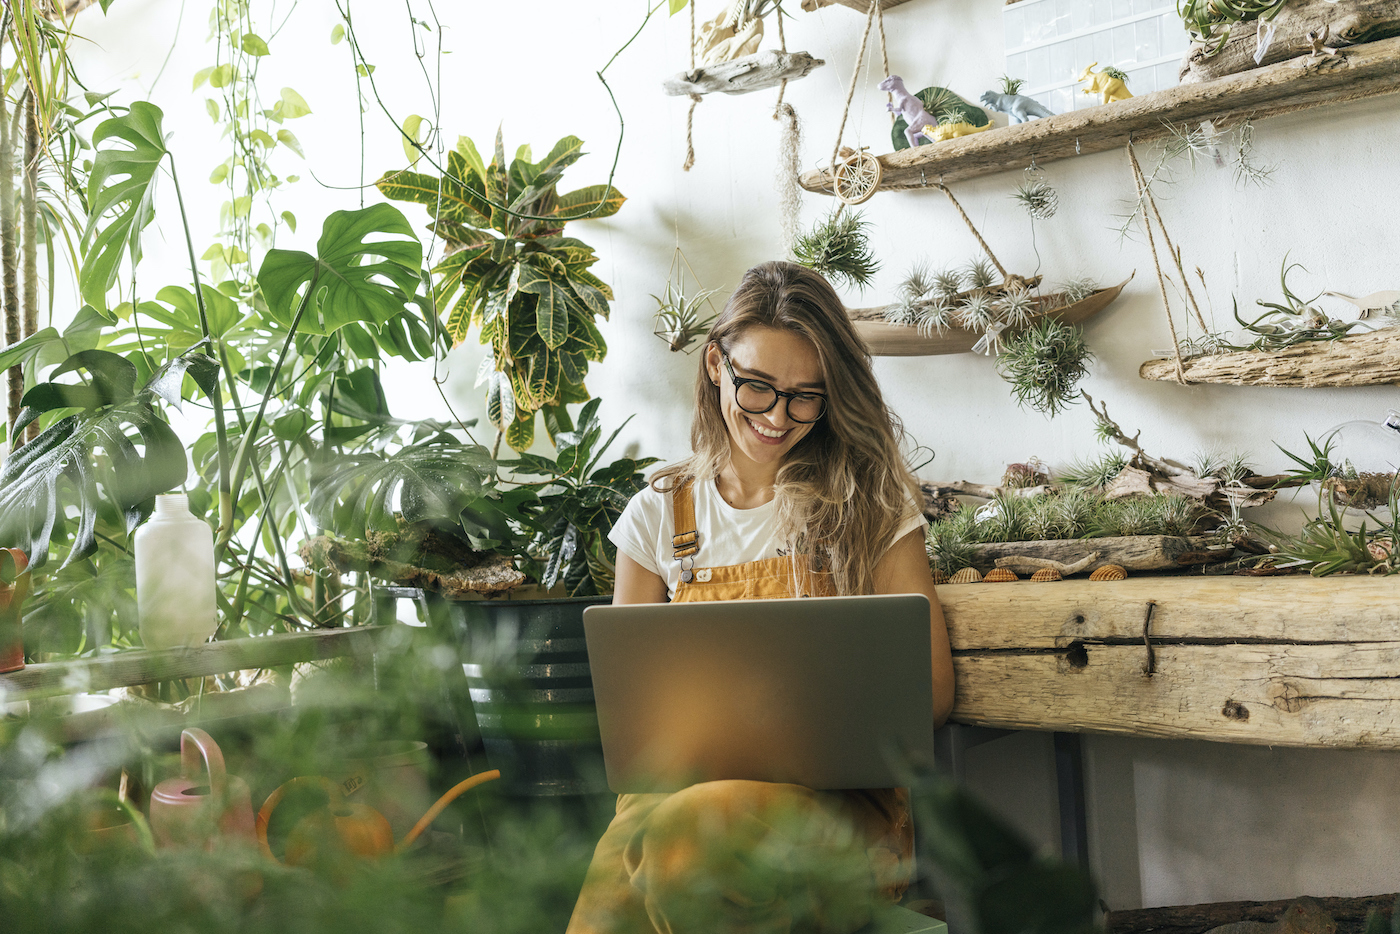 The 8 Best Places To Buy Plants Online To Turn Your Home Into a Leafy Paradise